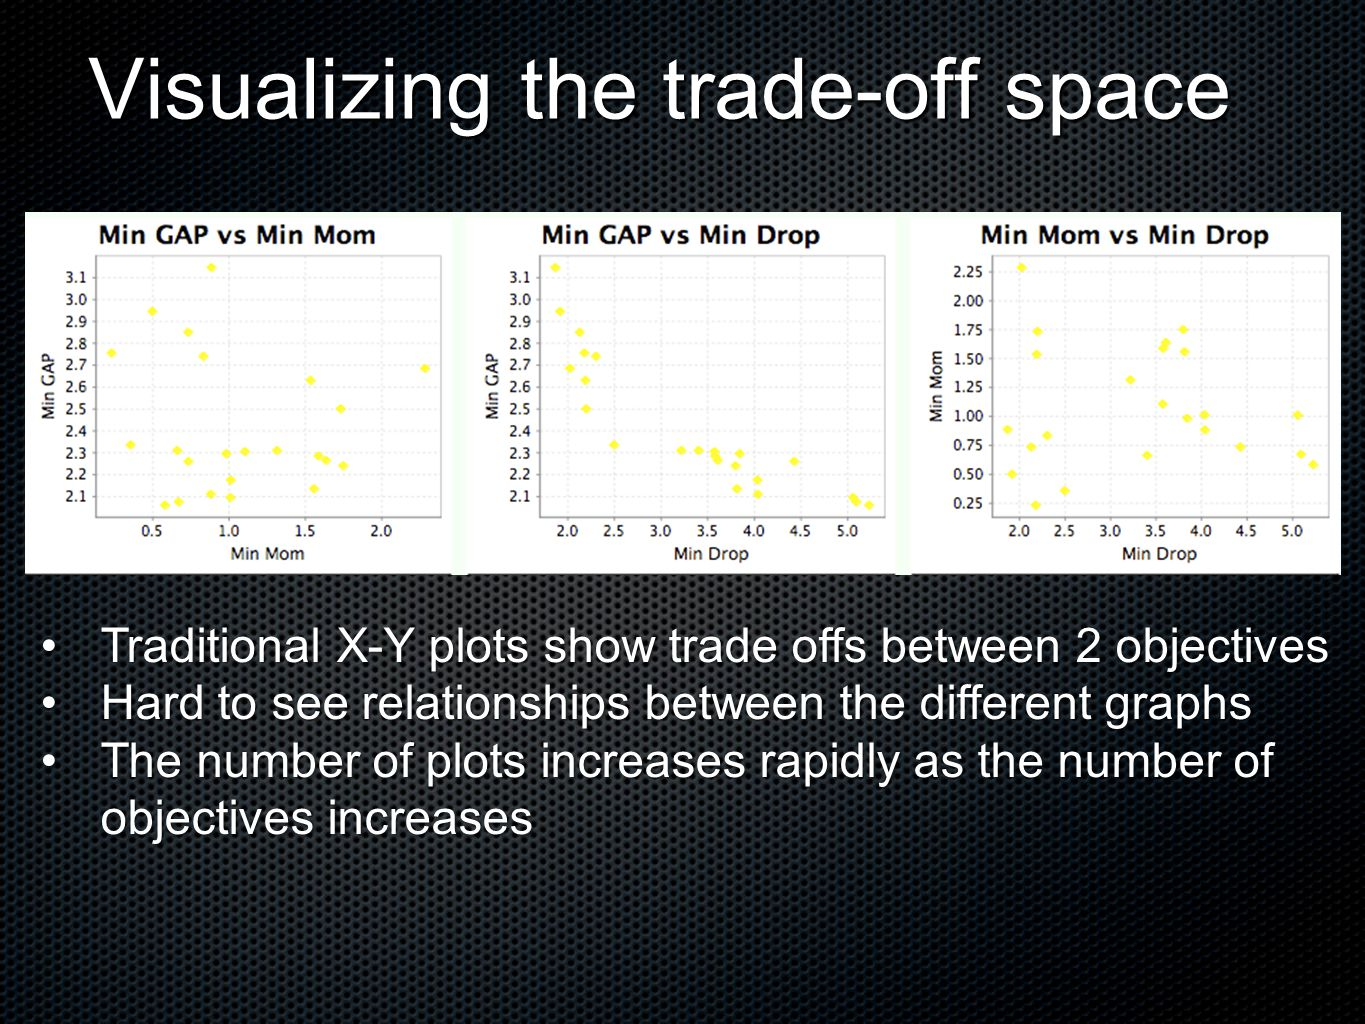 Visualizing the trade-off space Traditional X-Y plots show trade offs between 2 objectivesTraditional X-Y plots show trade offs between 2 objectives Hard to see relationships between the different graphsHard to see relationships between the different graphs The number of plots increases rapidly as the number of objectives increasesThe number of plots increases rapidly as the number of objectives increases